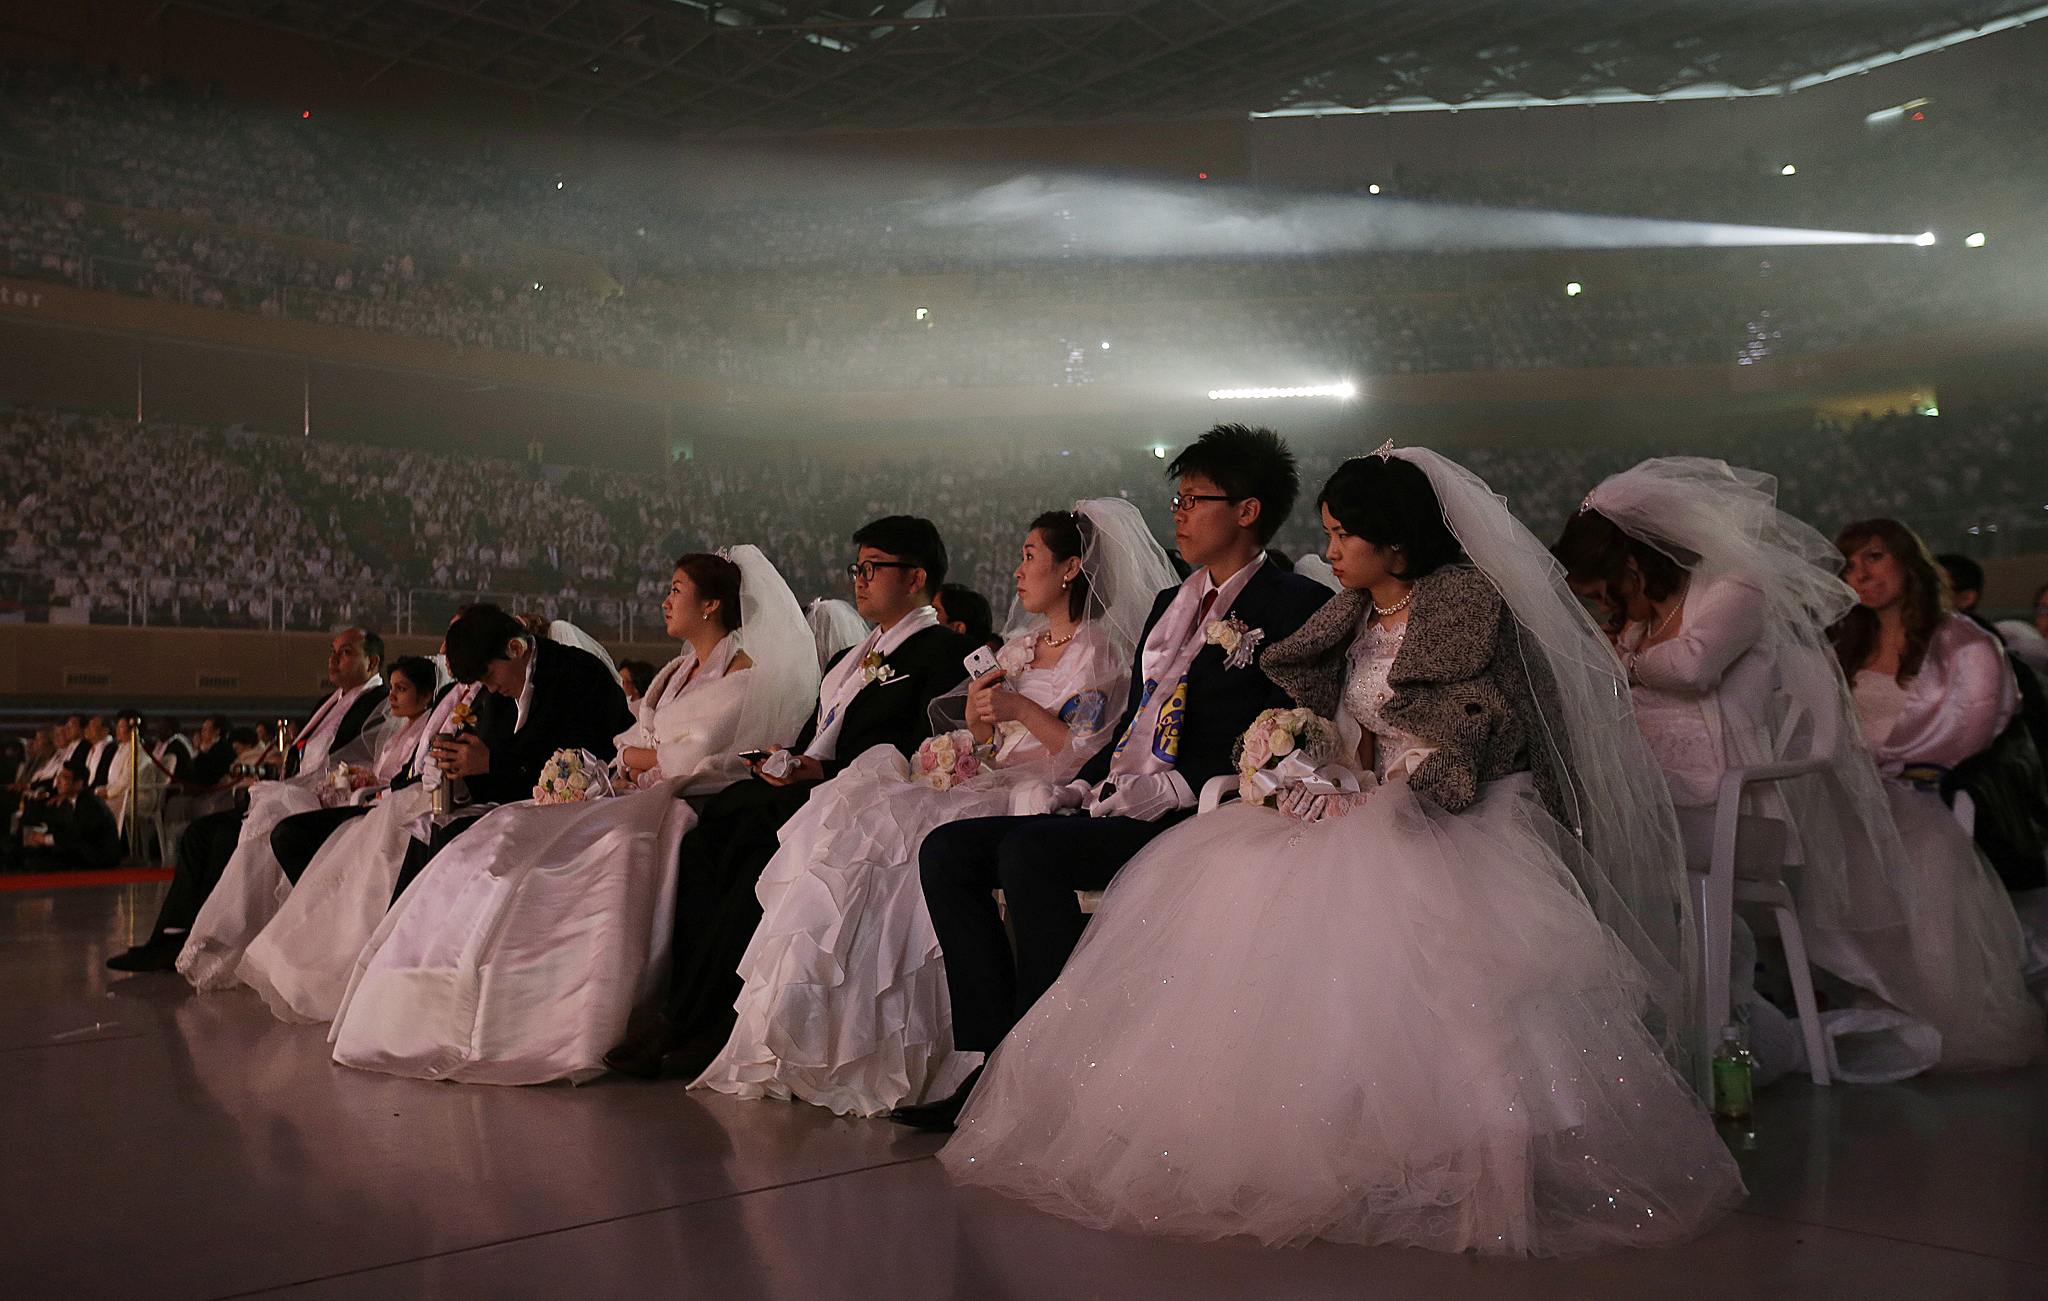 Couples from around the world watch a musical in a mass wedding ceremony at the Cheong Shim Peace World Center in Gapyeong, South Korea, Tuesday, March 3, 2015. 3,800 couples from more than fifty countries exchanged or reaffirmed marriage vows in the Unification Church's mass wedding arranged by Hak Ja Han Moon, wife of the late Rev. Sun Myung Moon, the controversial founder of the church. (AP Photo/Ahn Young-joon)